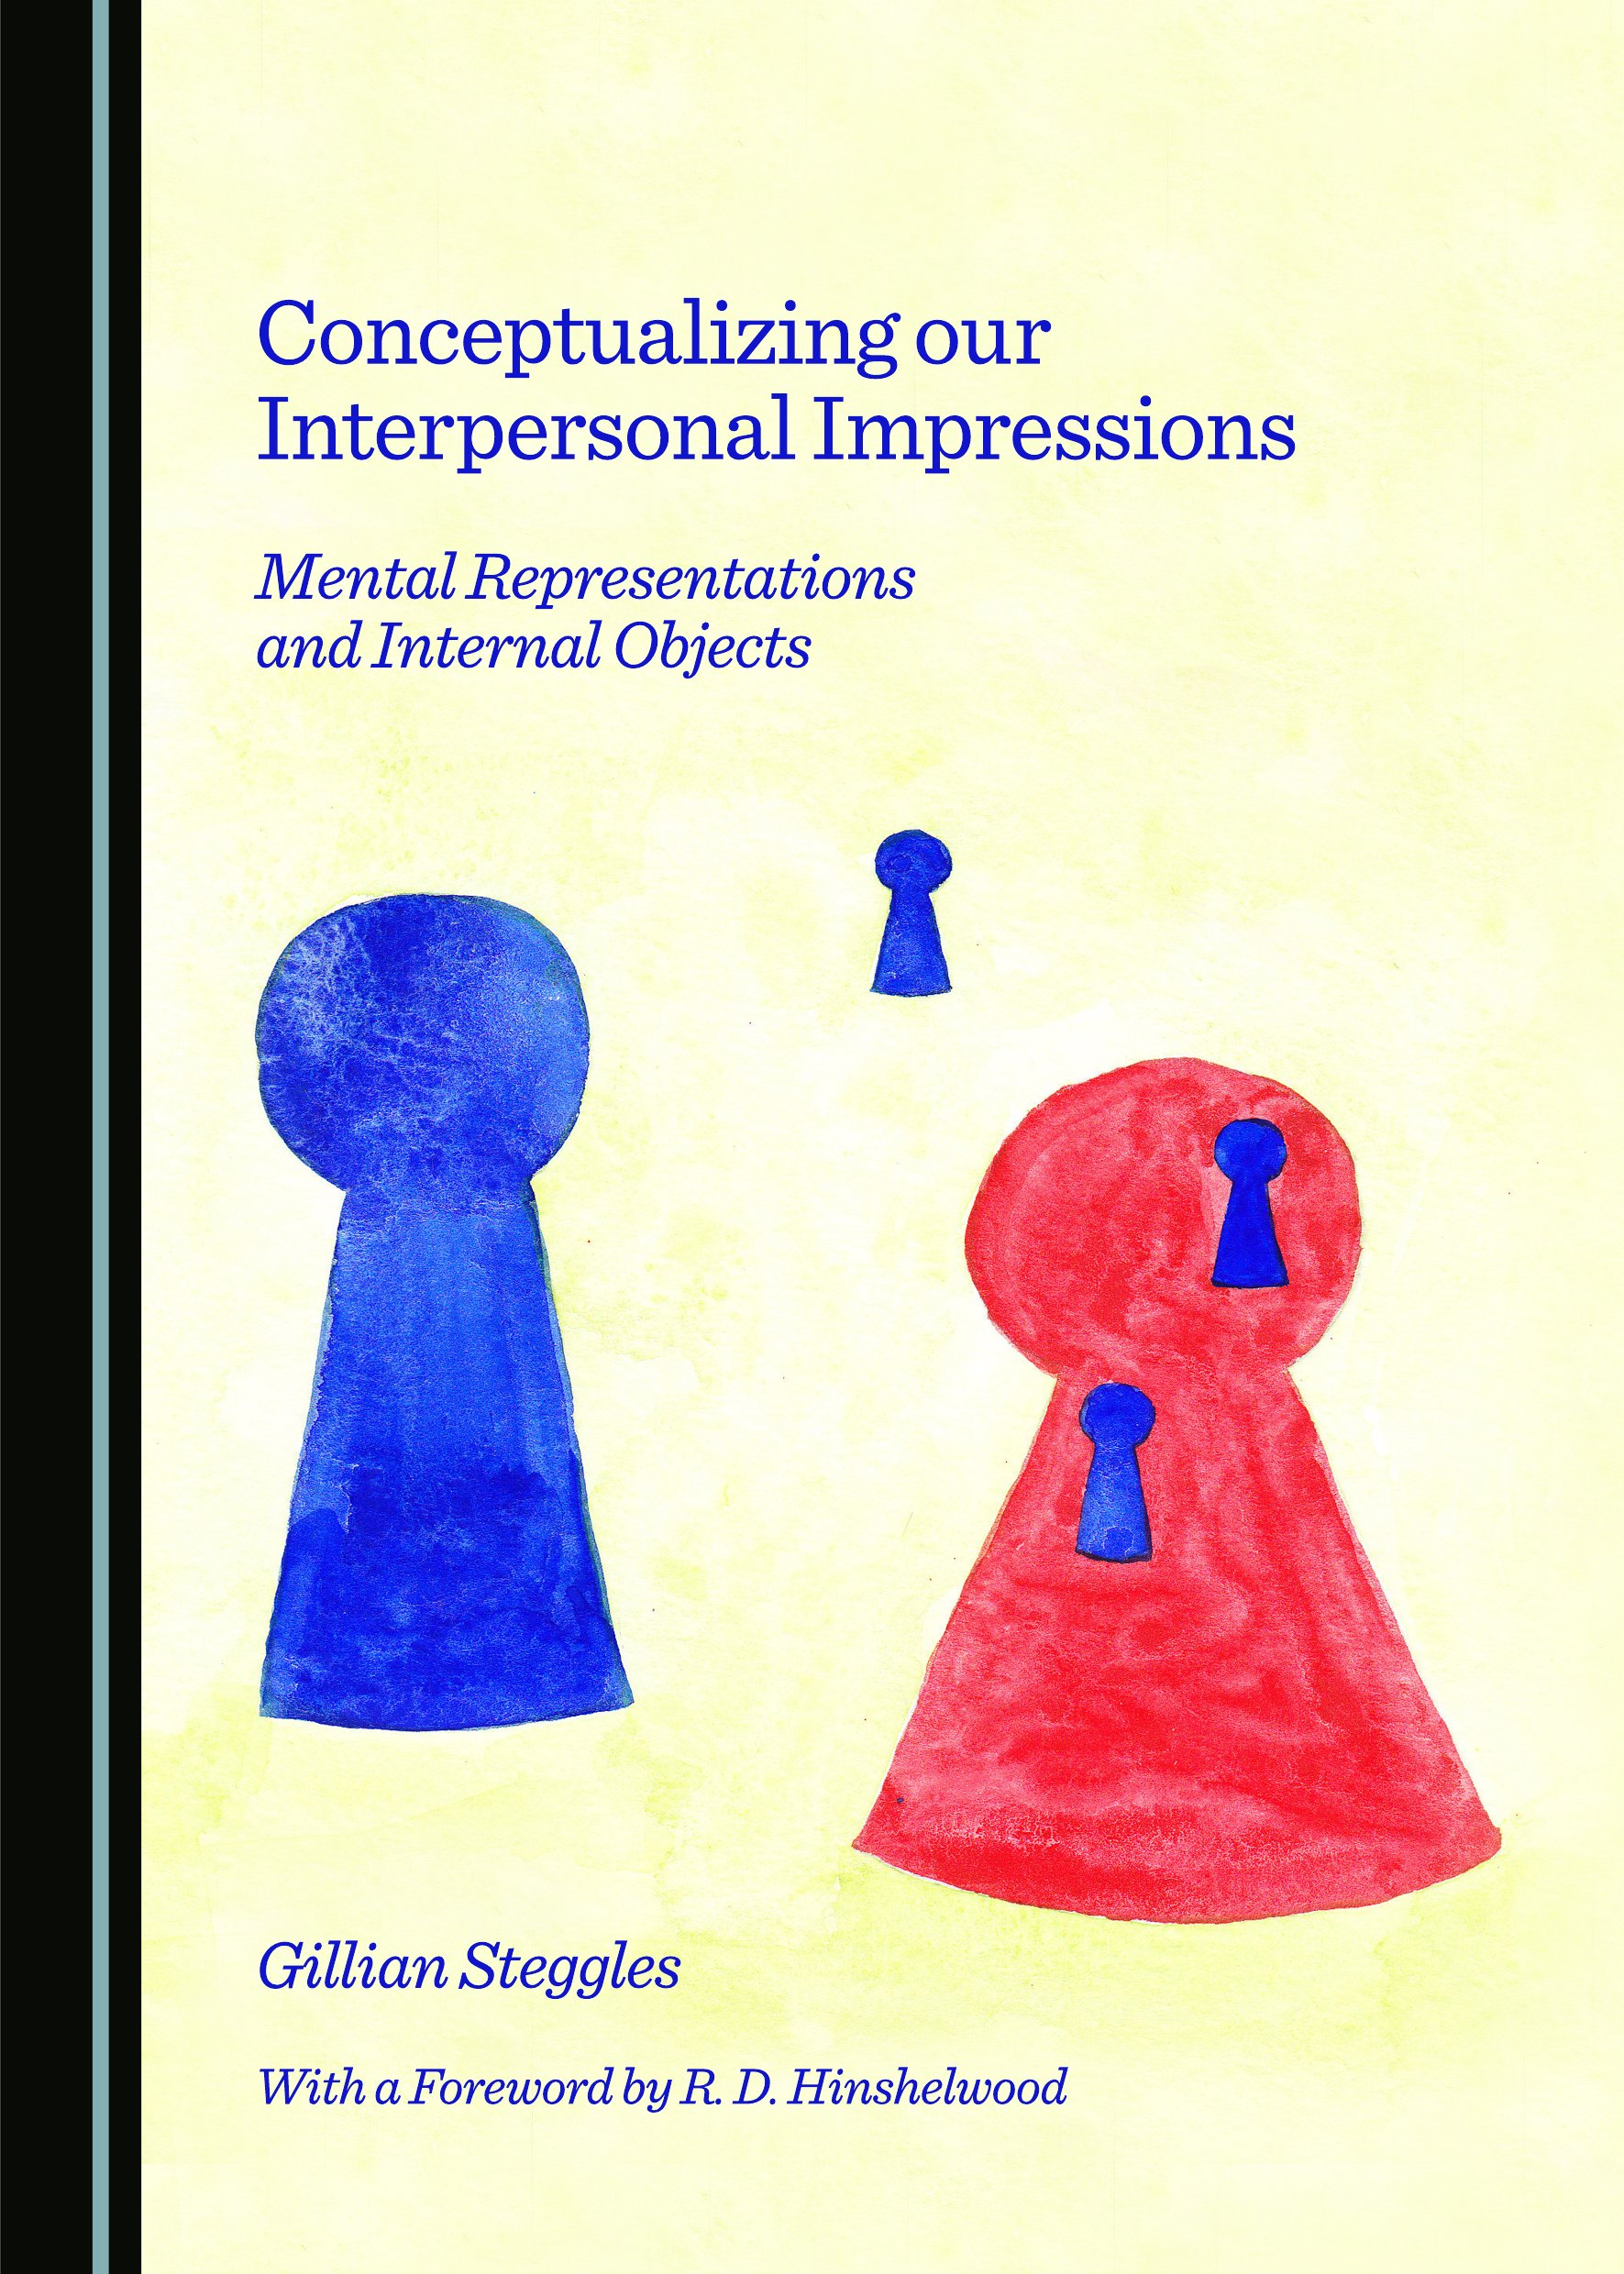 Conceptualizing our Interpersonal Impressions: Mental Representations and Internal Objects